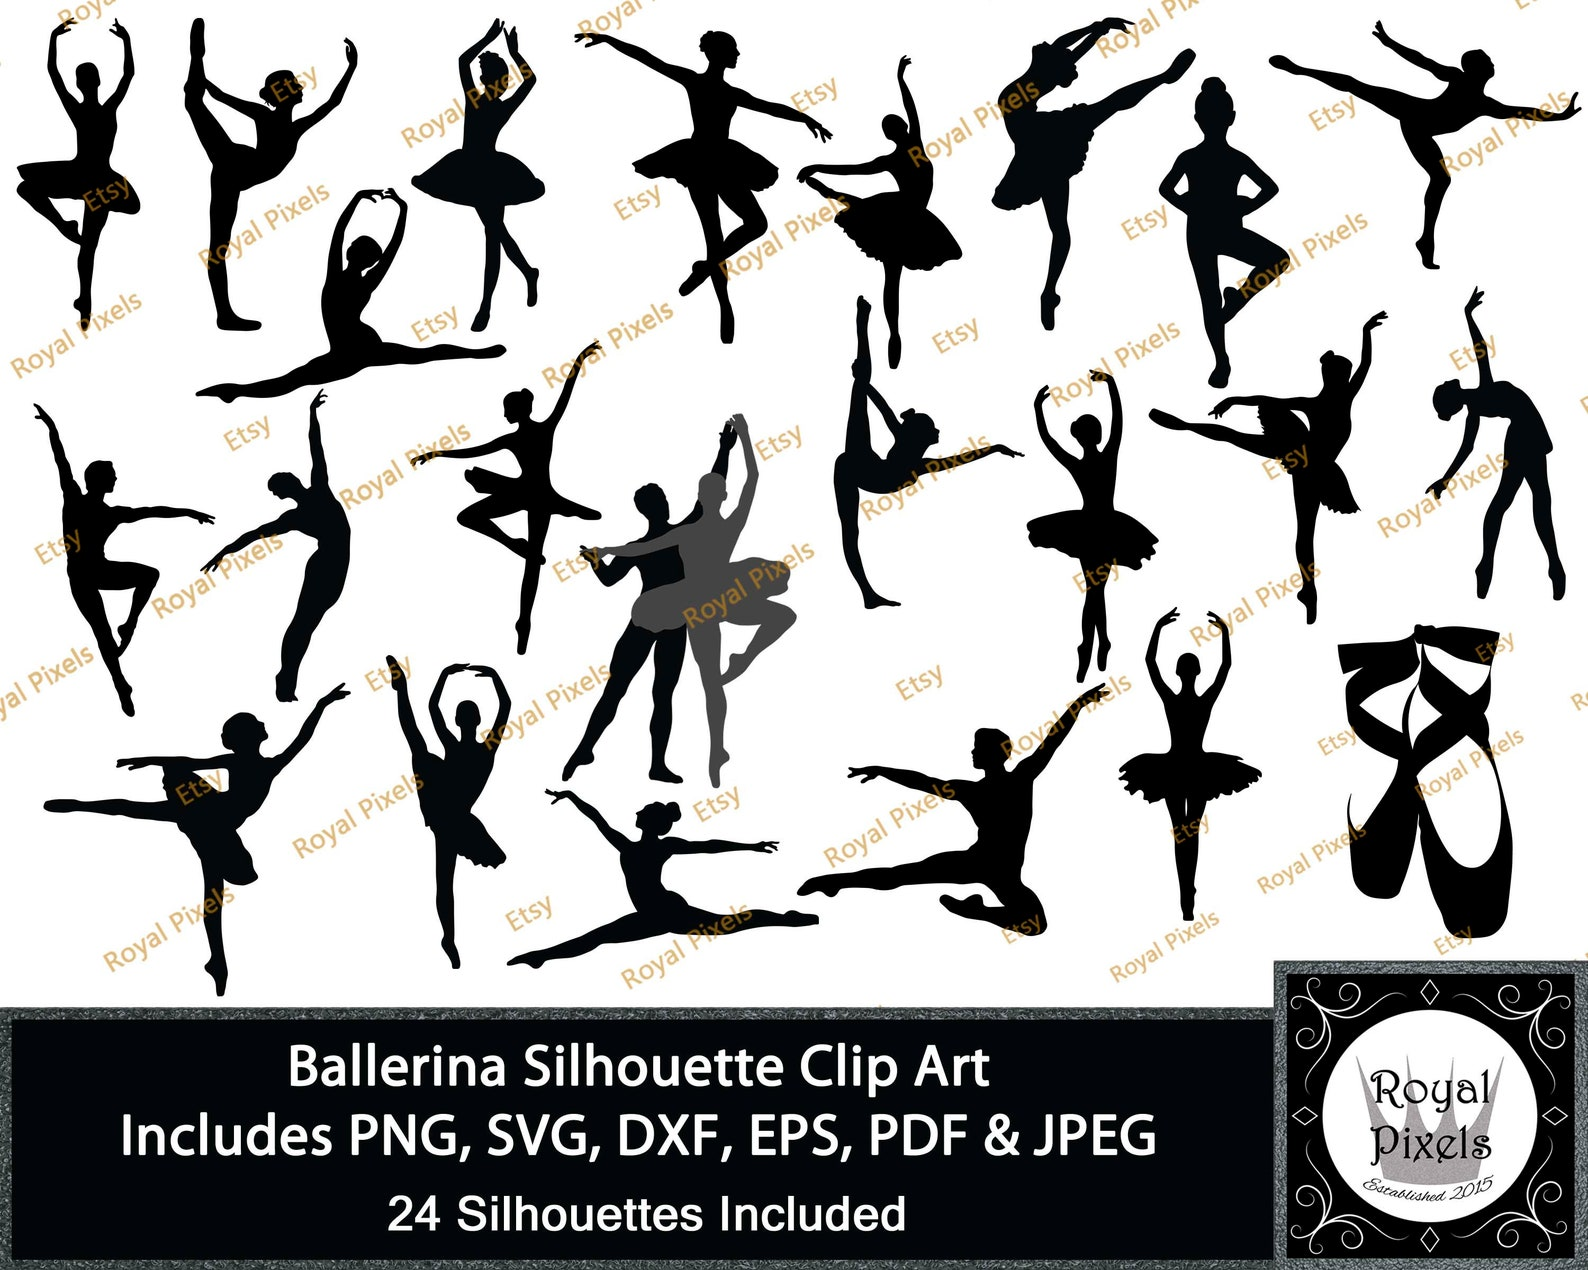 ballerina silhouette clip art 24 piece, dancing silhouettes, ballet clip art, male ballerina, 7 inches, instant download, png sv